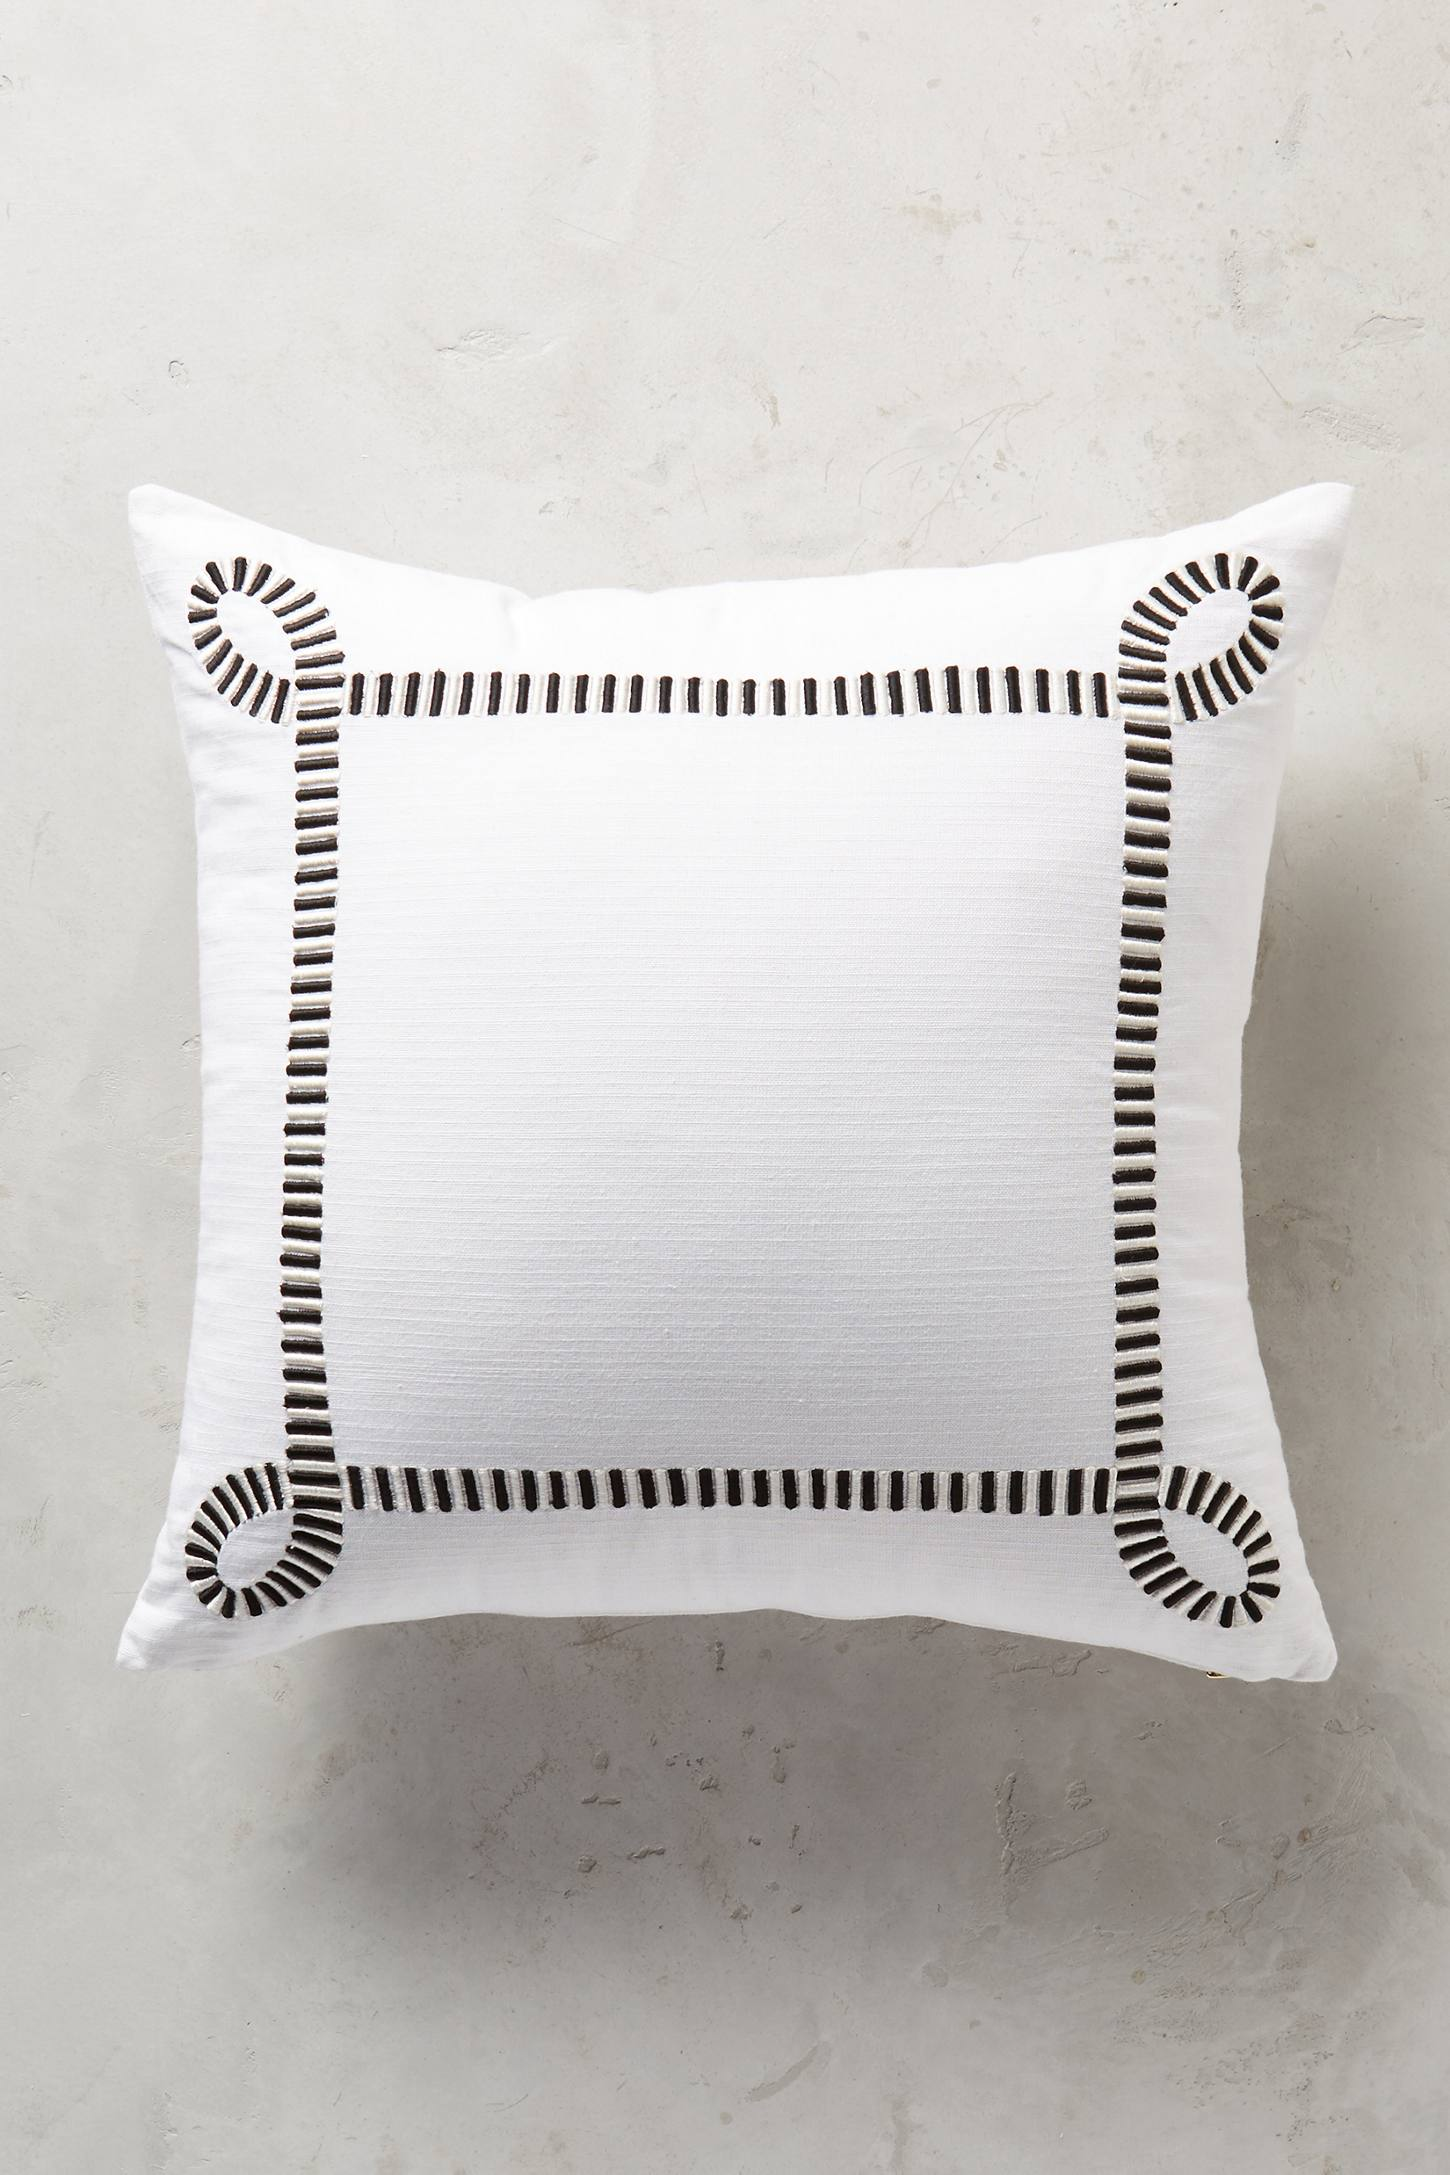 Winding Road Cushion